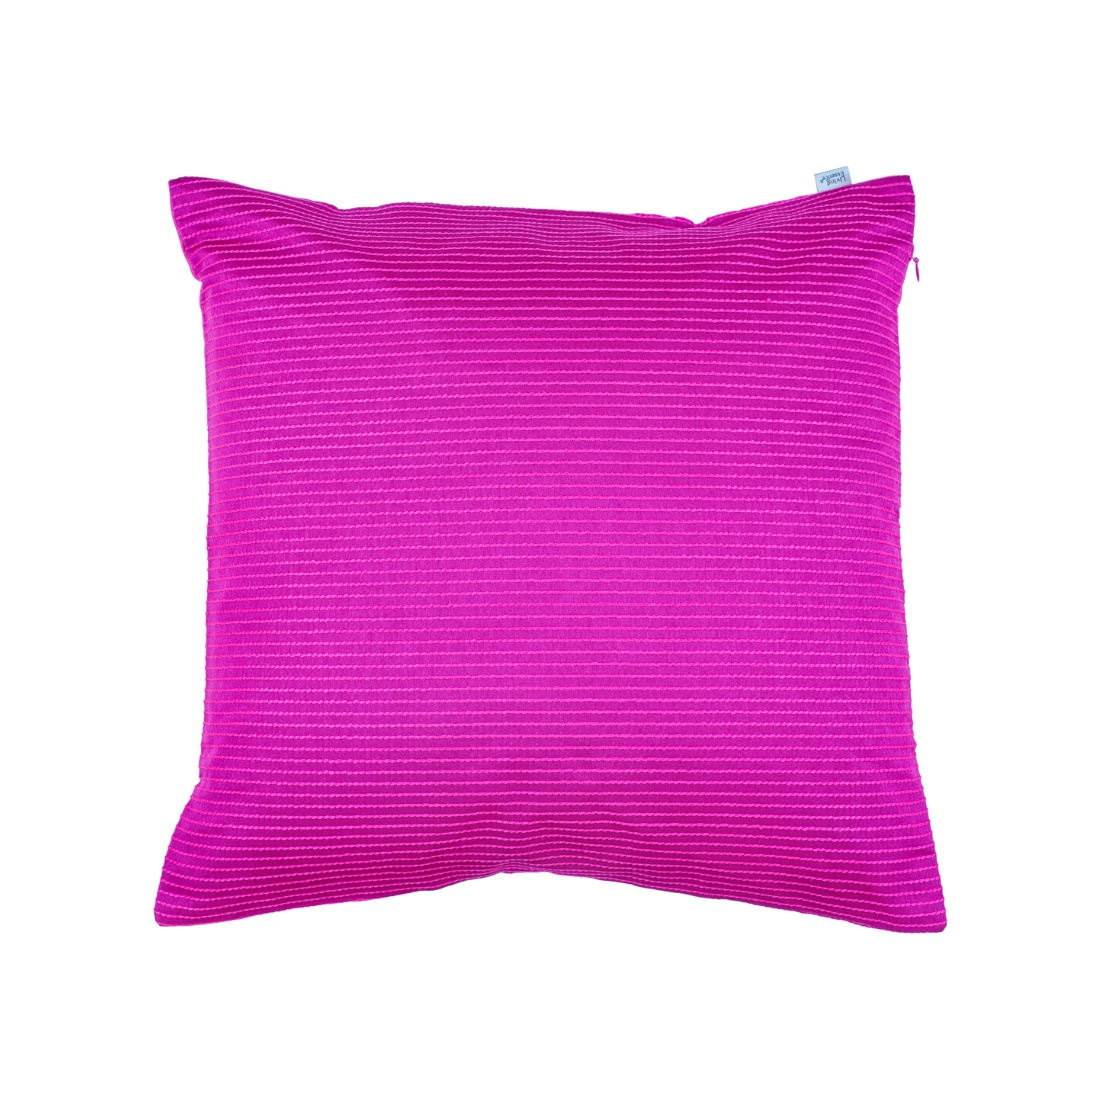 Pin Stripe Cushion Cover 40X40 Cm Pink Polyester Cushion Covers in Pink Colour by Living Essence